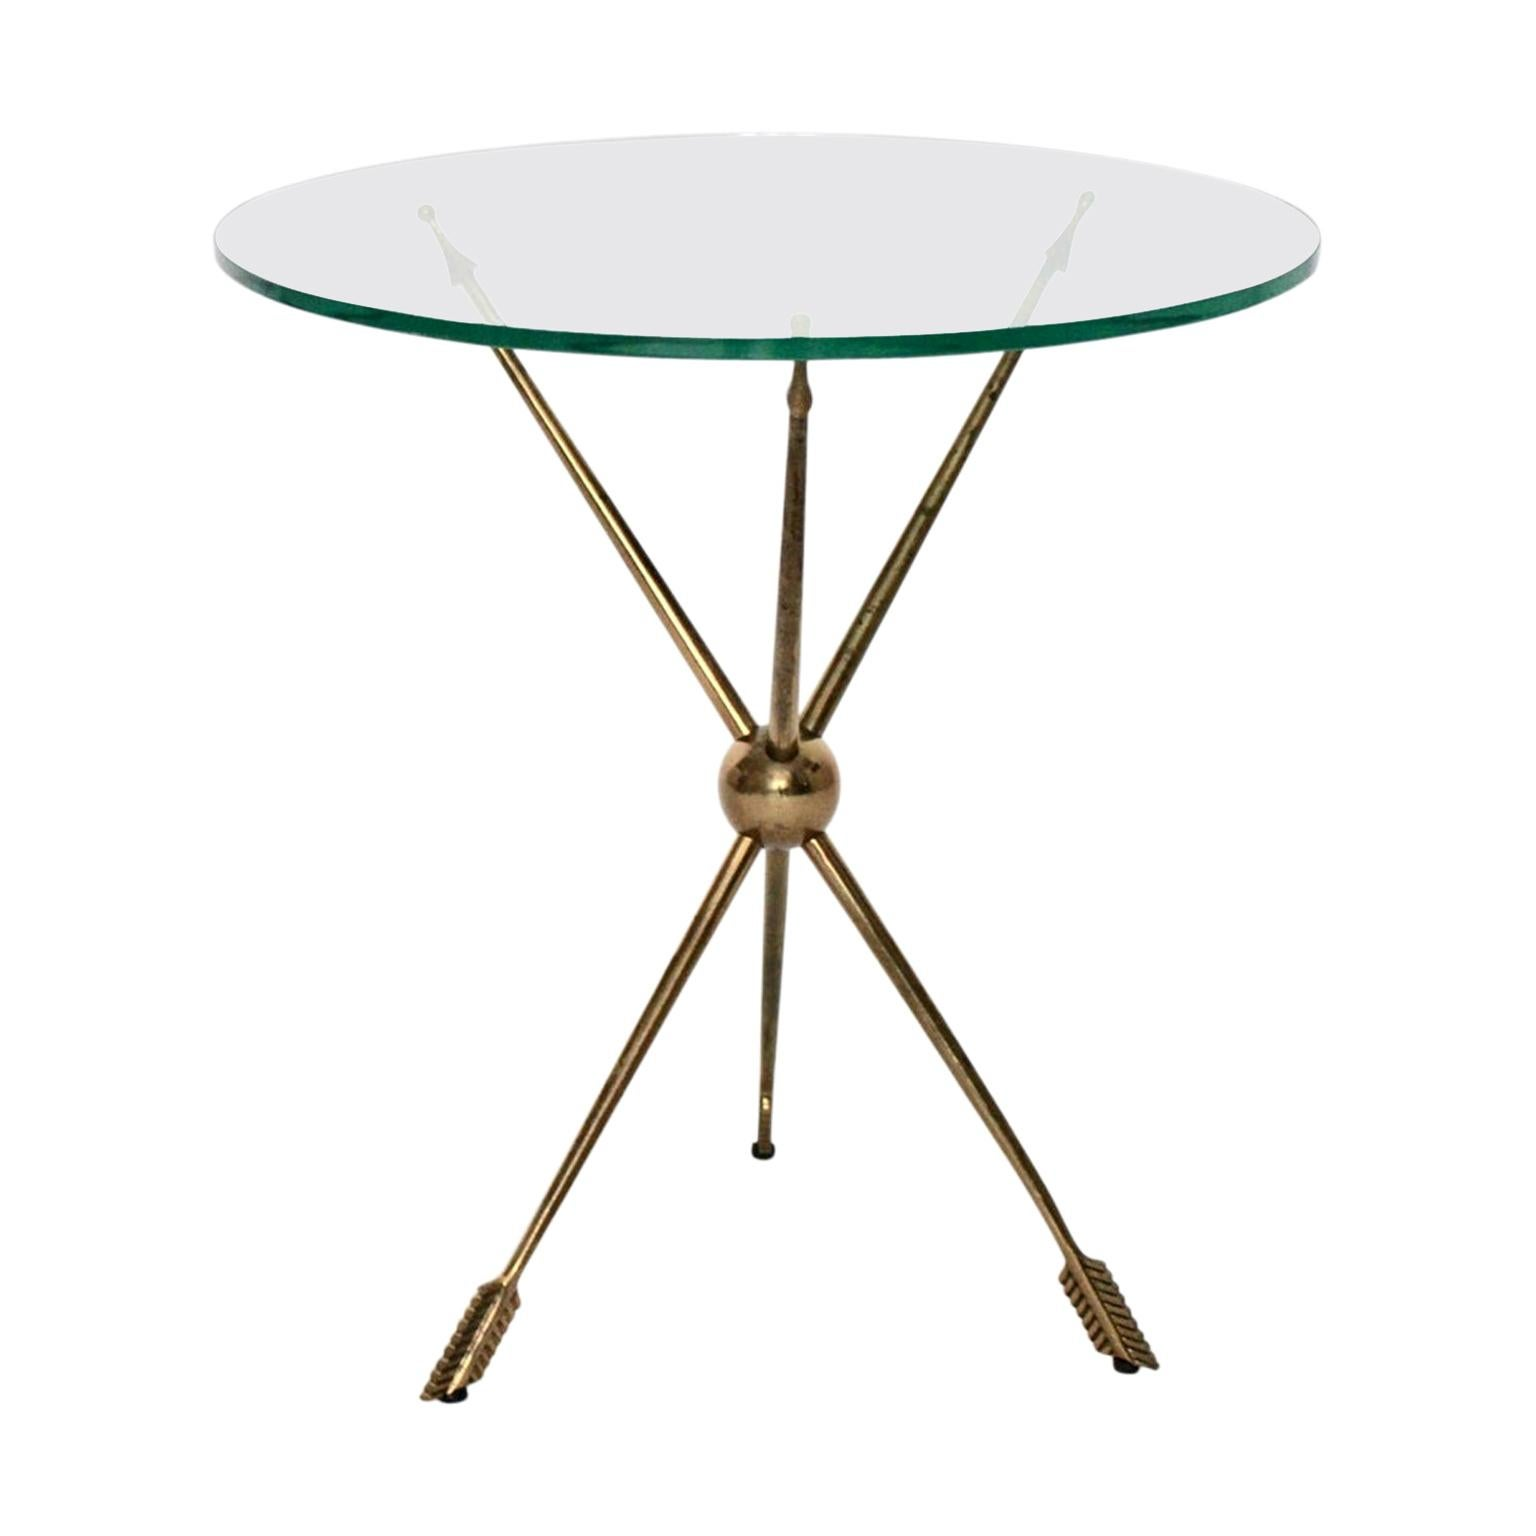 Mid-Century Modern Vintage Glass Arrow Side Table/Occasional Table, 1950s, Italy